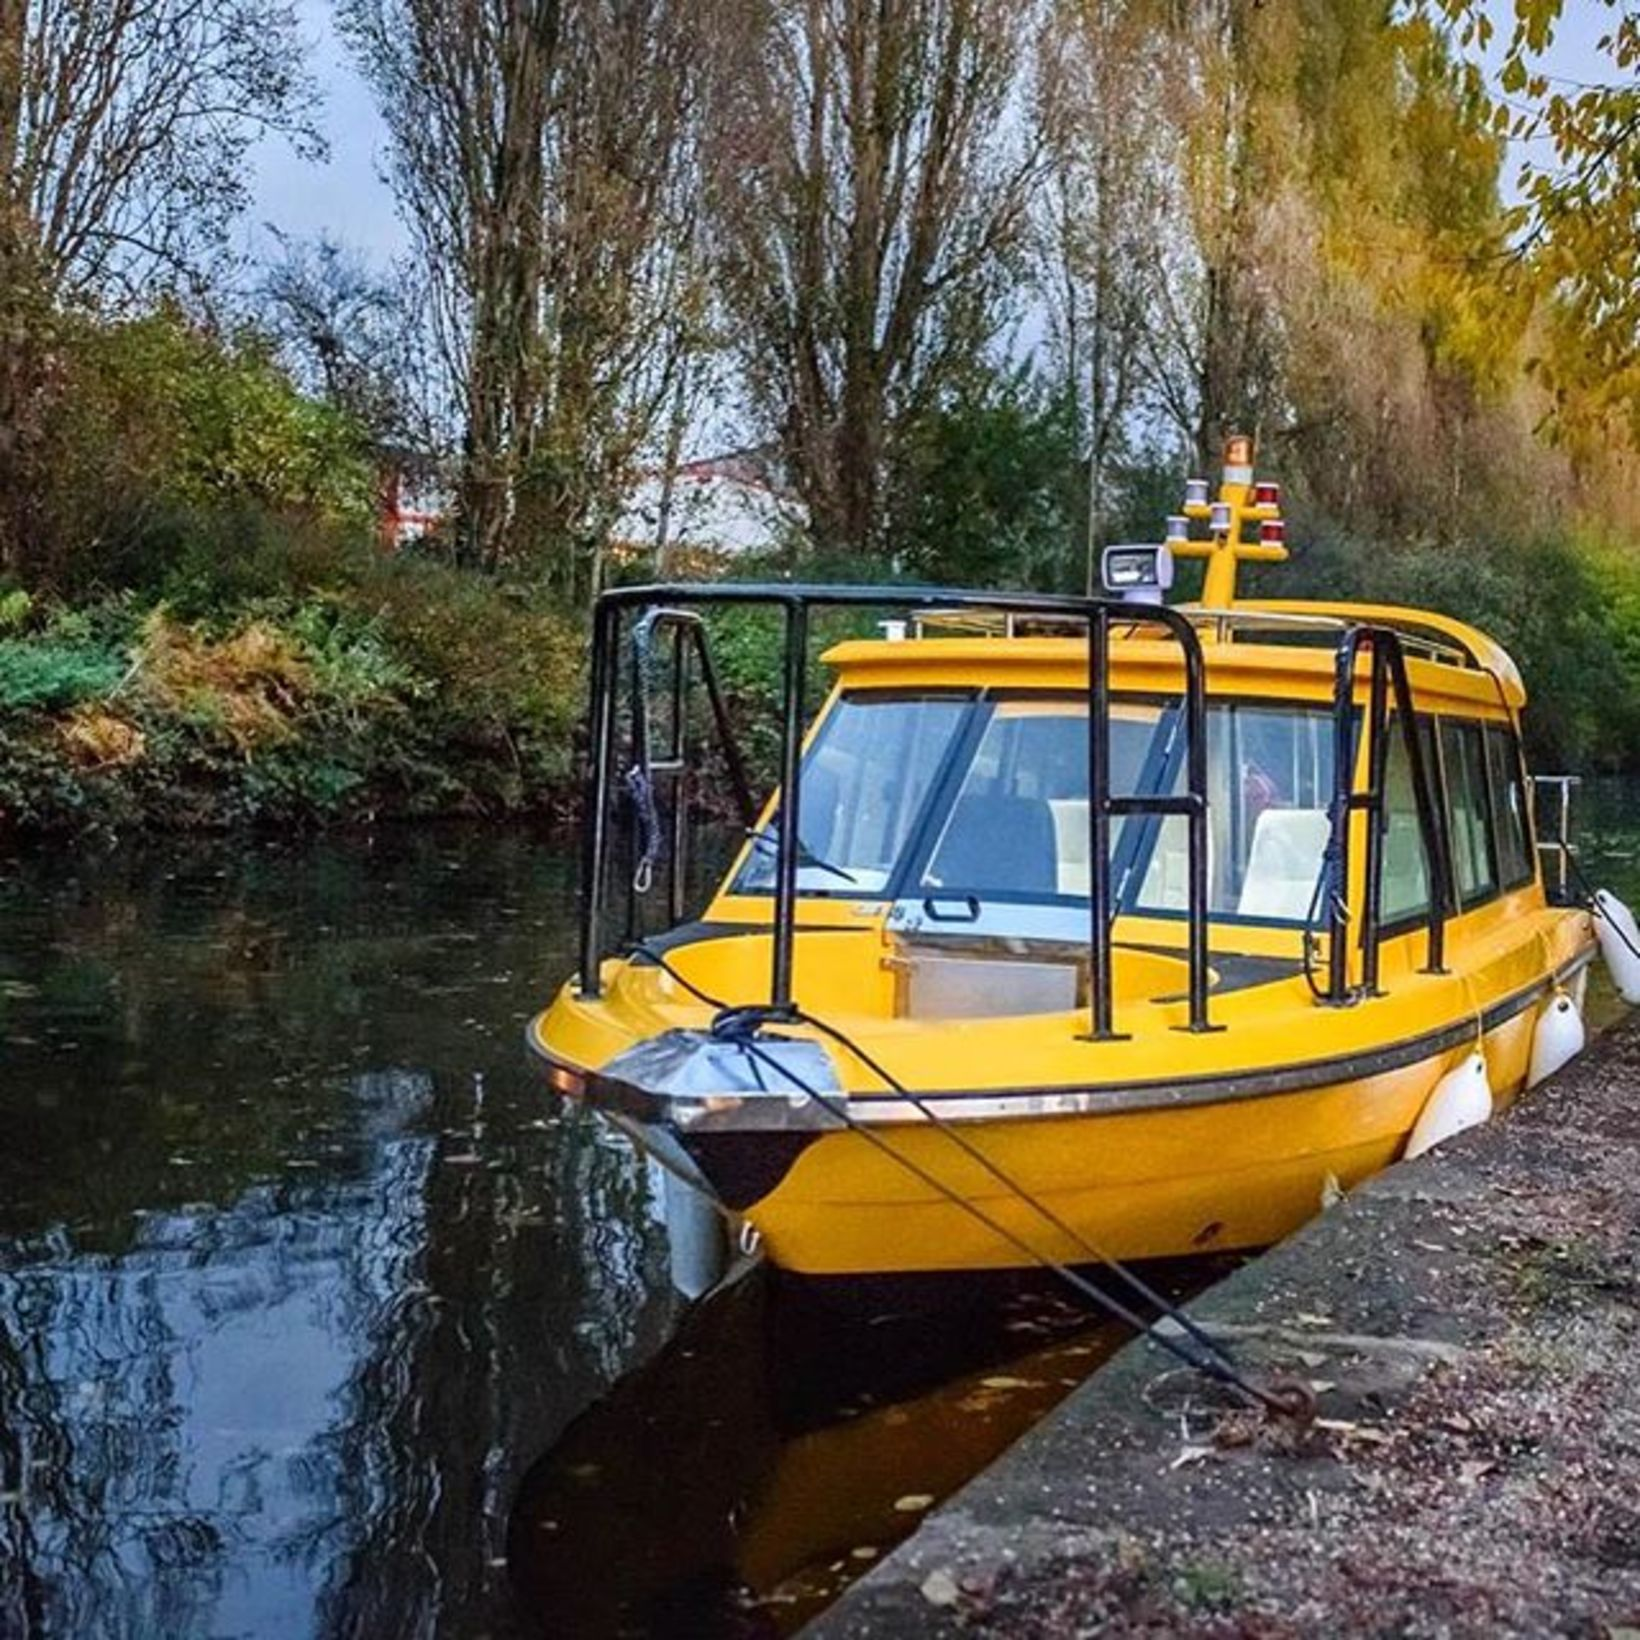 Where will your water taxi adventure take you?